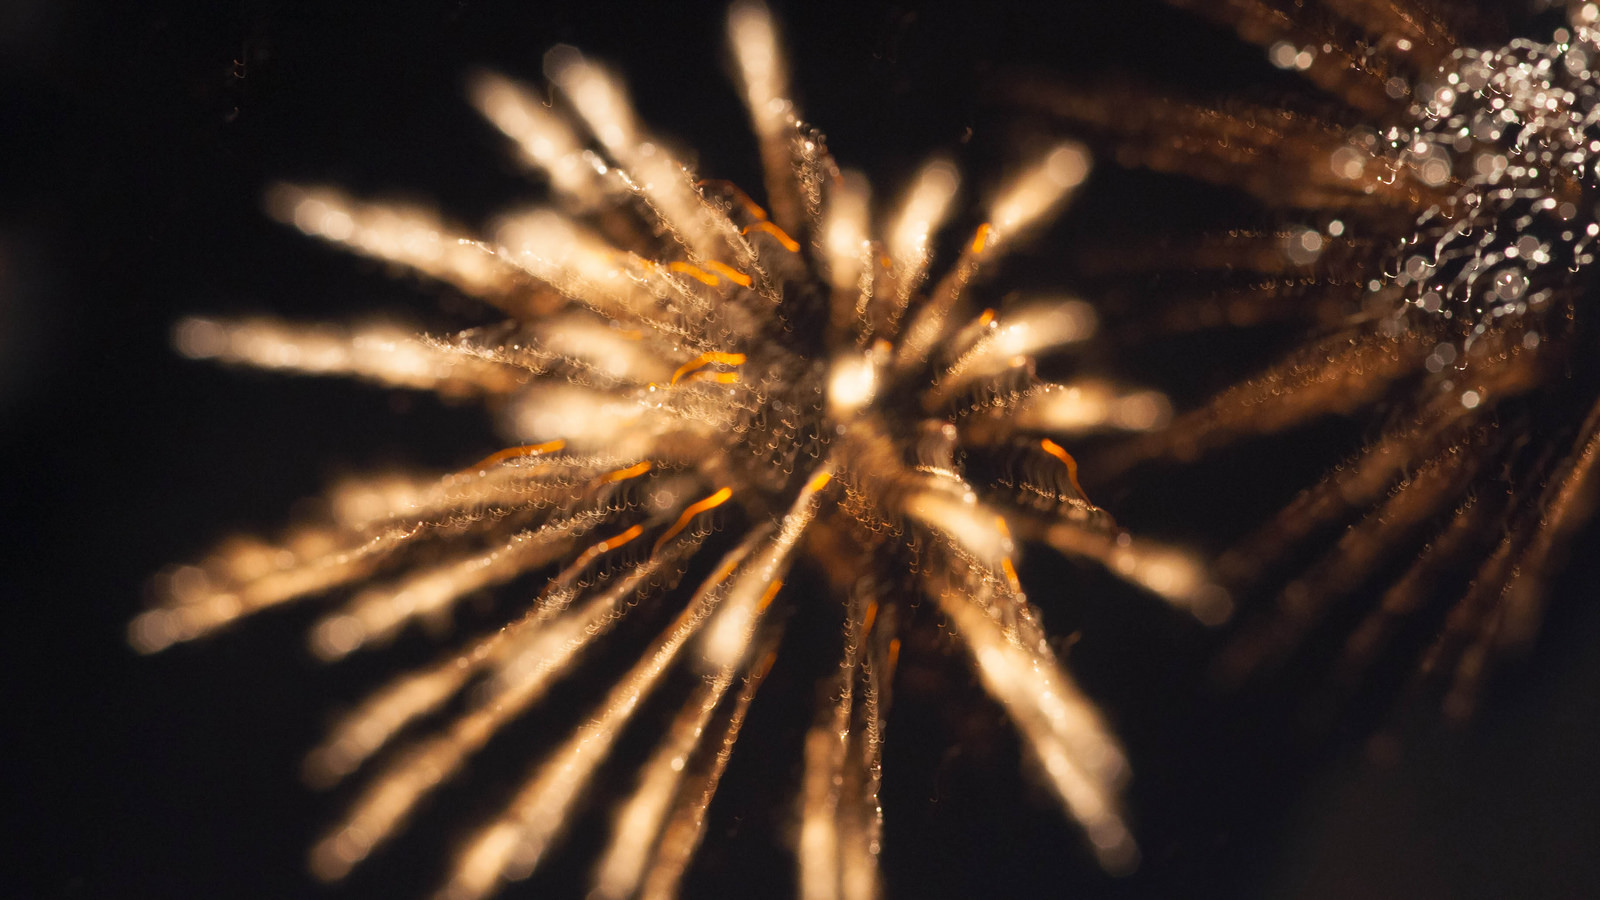 Capturing Fireworks: Long-Exposure Photography